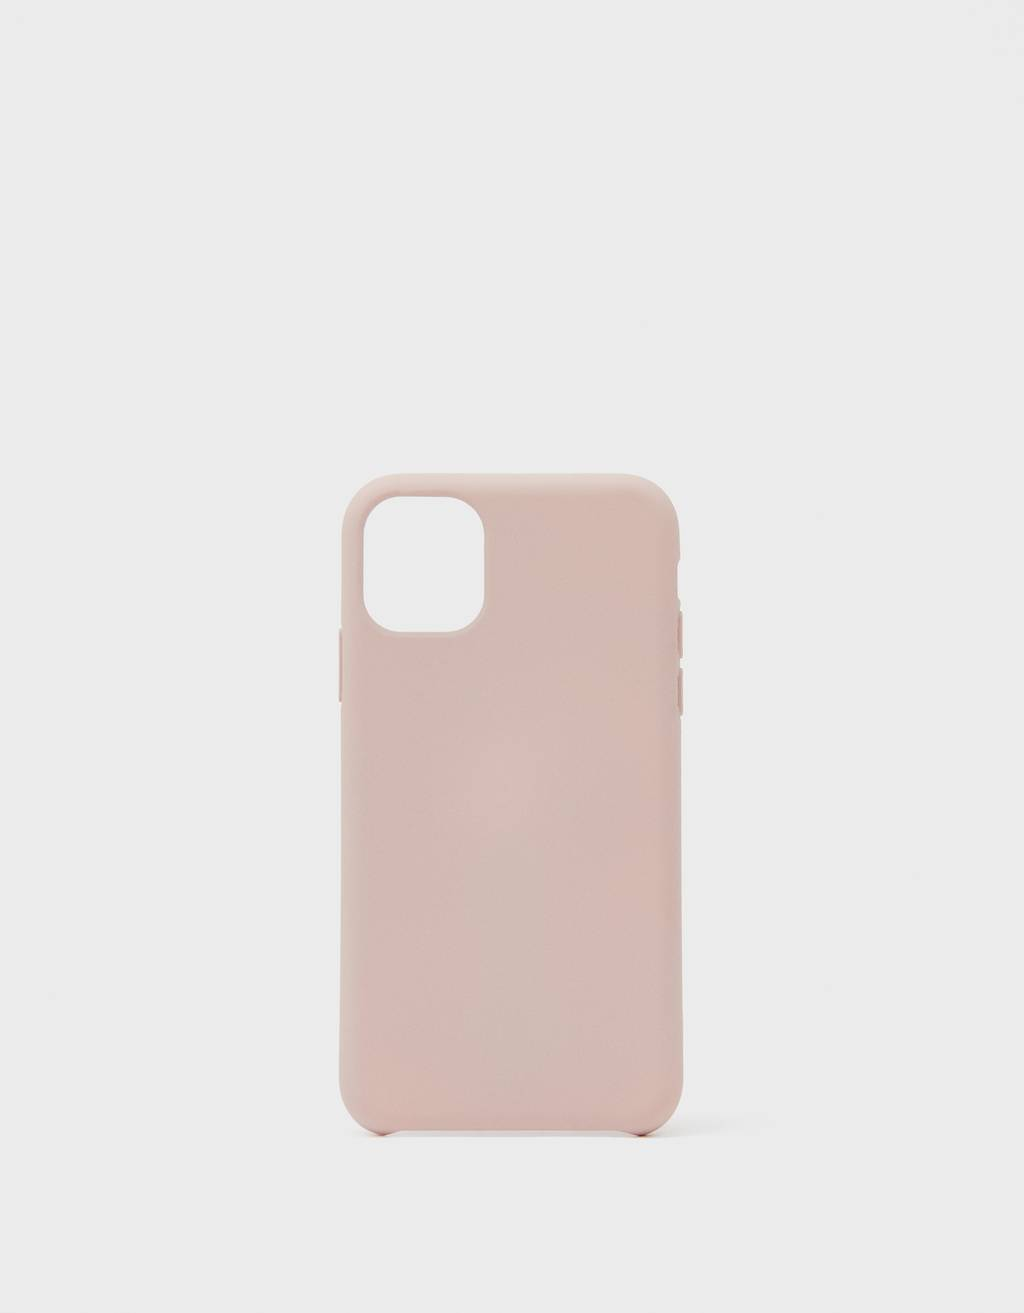 Monochrome iPhone 11 Plus case